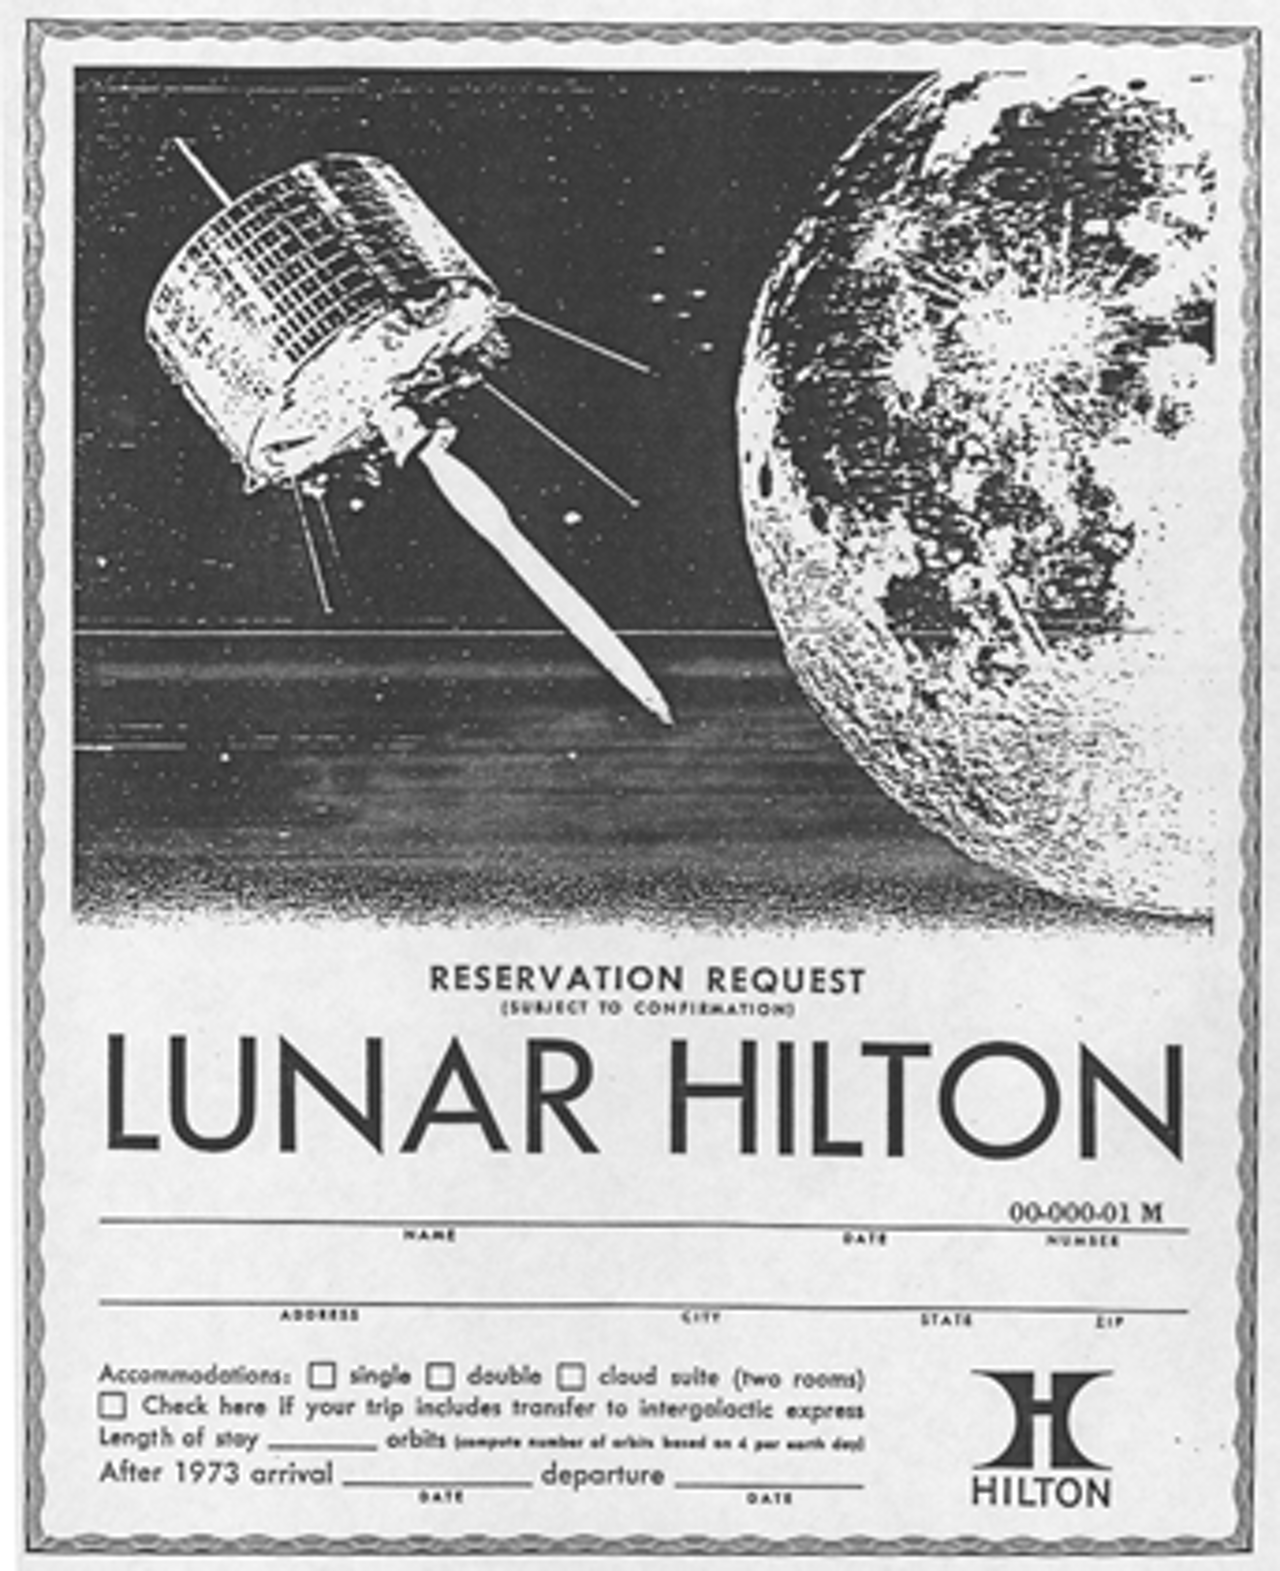 Reservation card mockup for the Lunar Hilton.